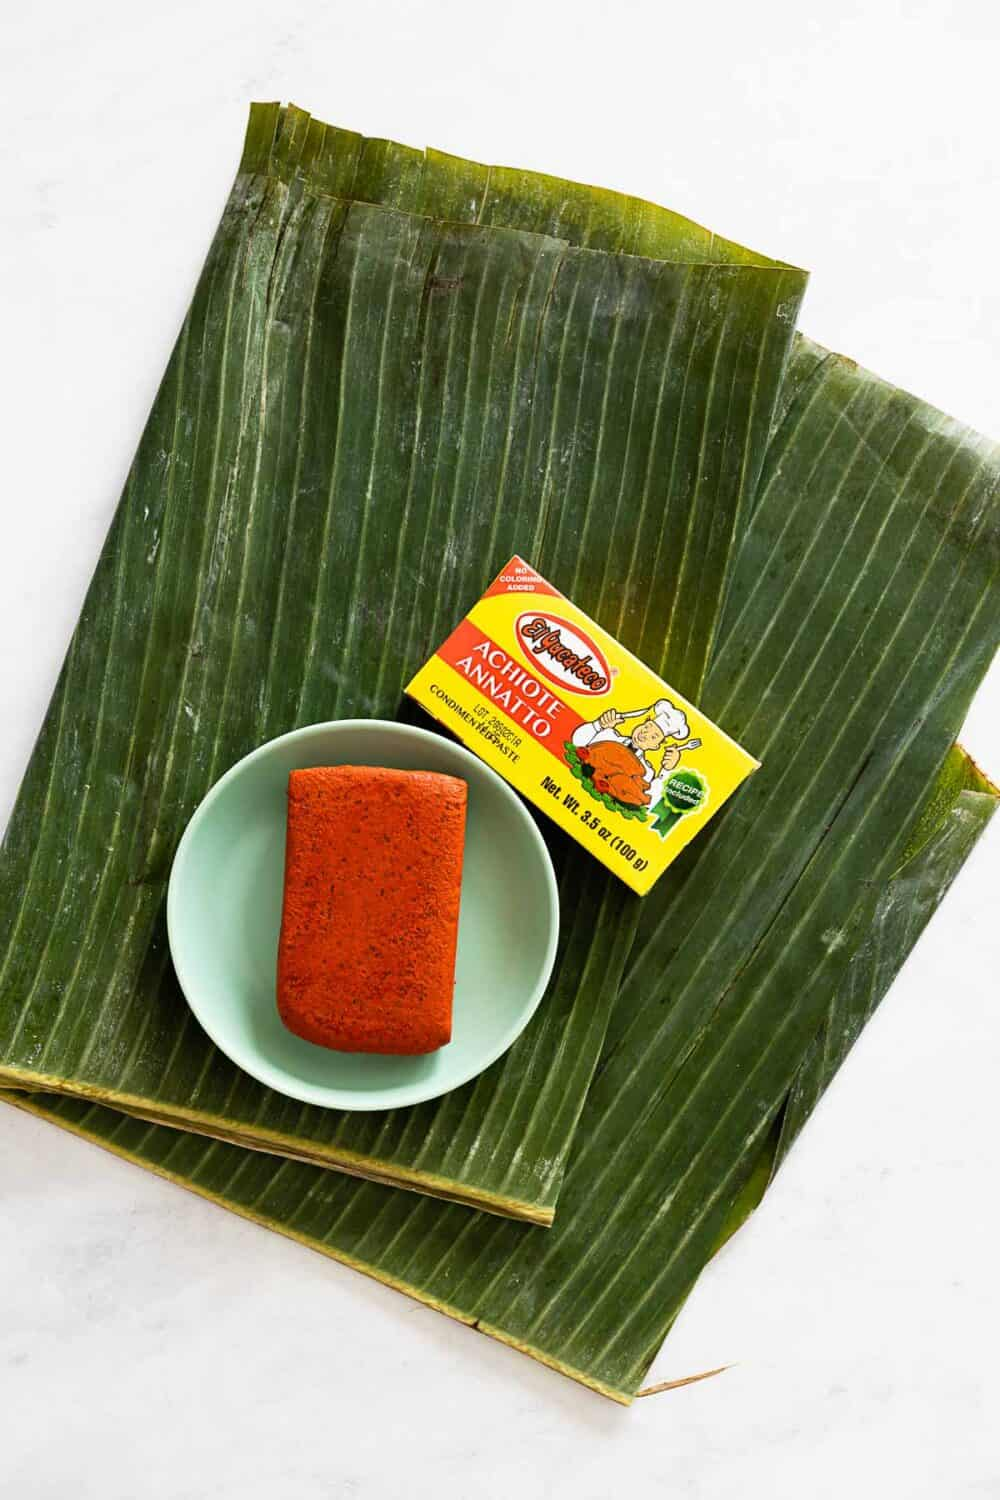 A folded banana leaf and a block of achiote paste.